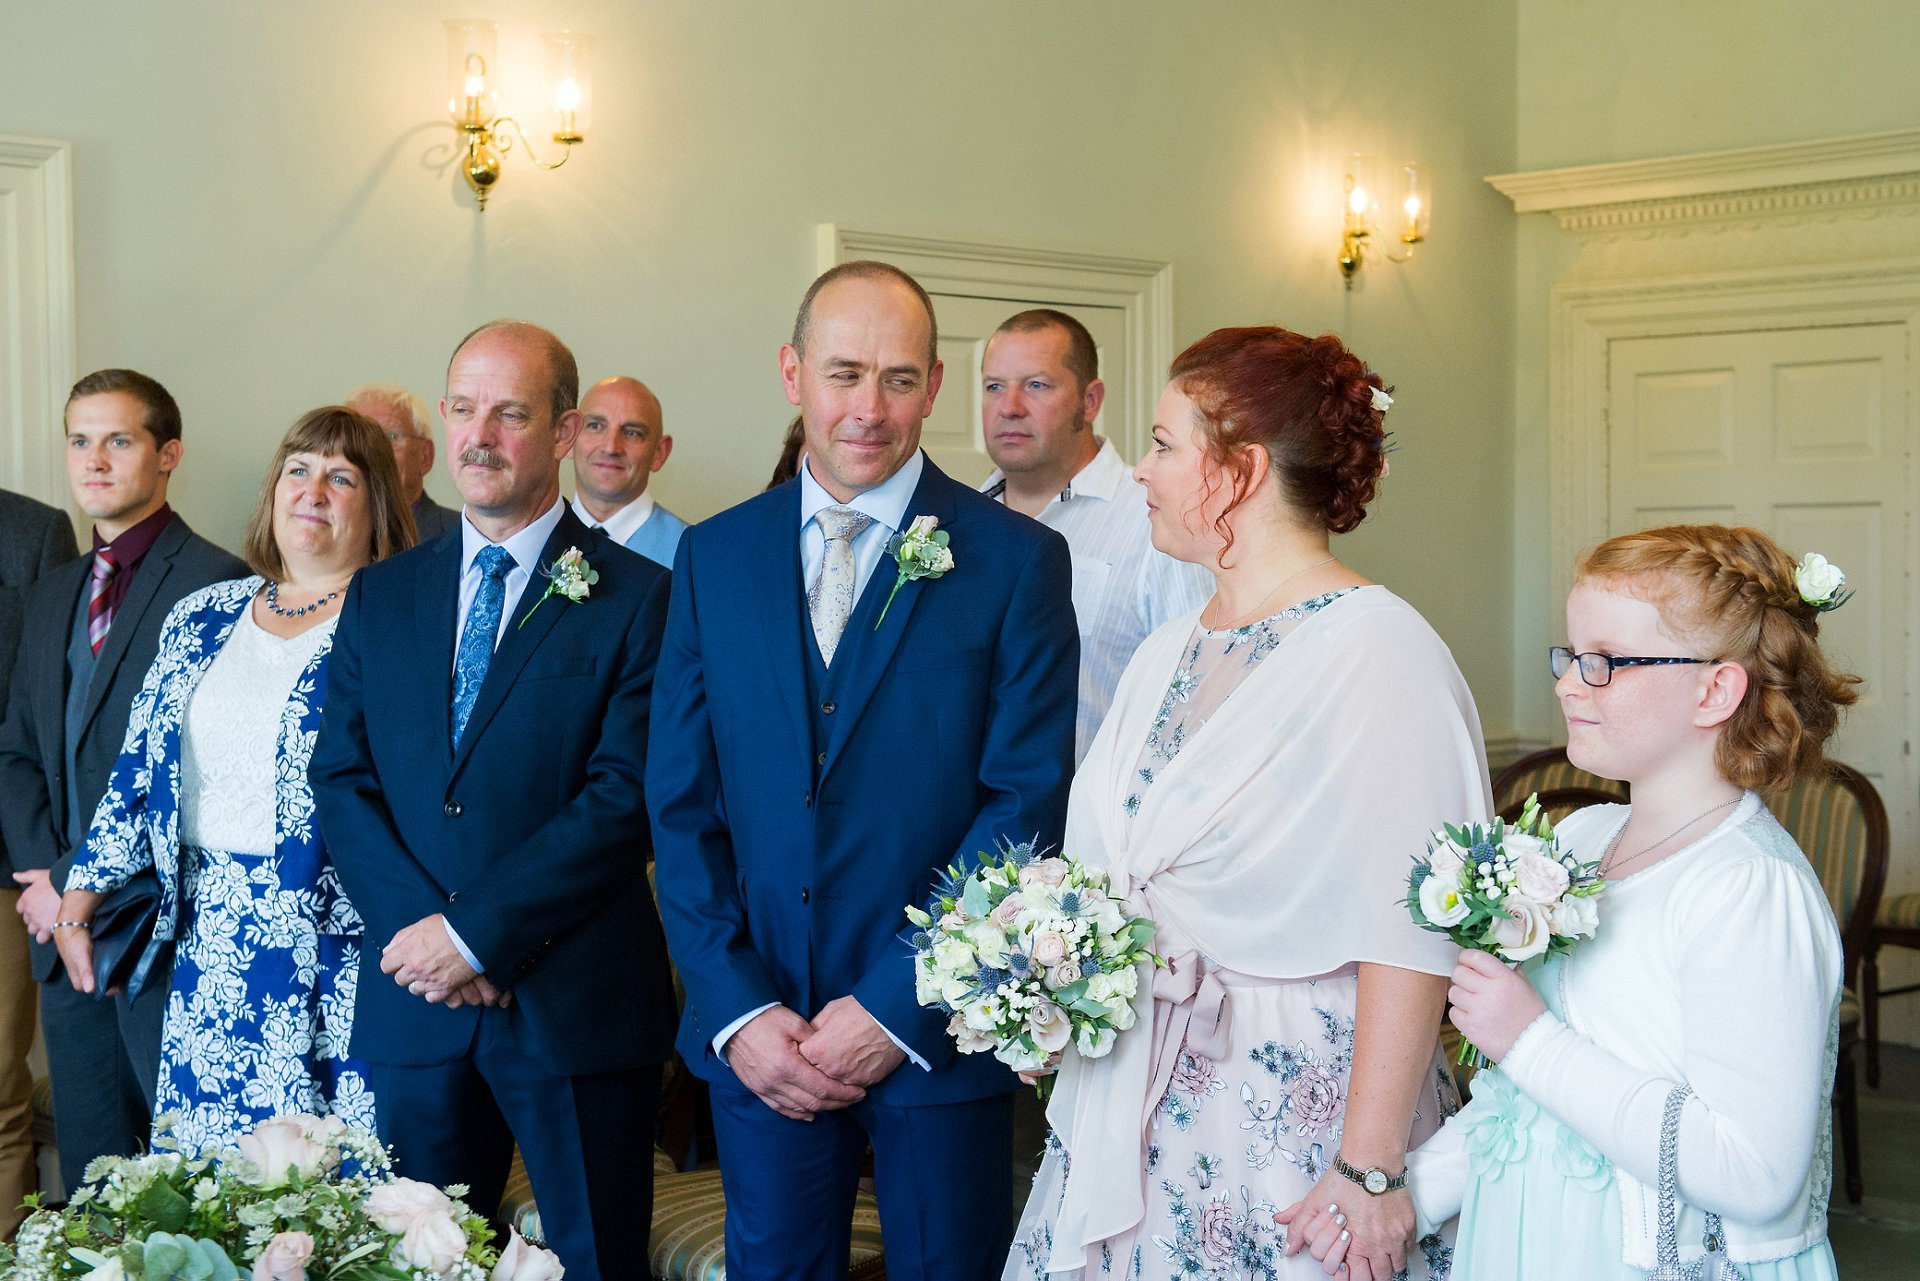 The Drawing Room ceremony room at Park House in Horshamhere showing the bride and groom and their wedding guests at the start of their civil wedding ceremony